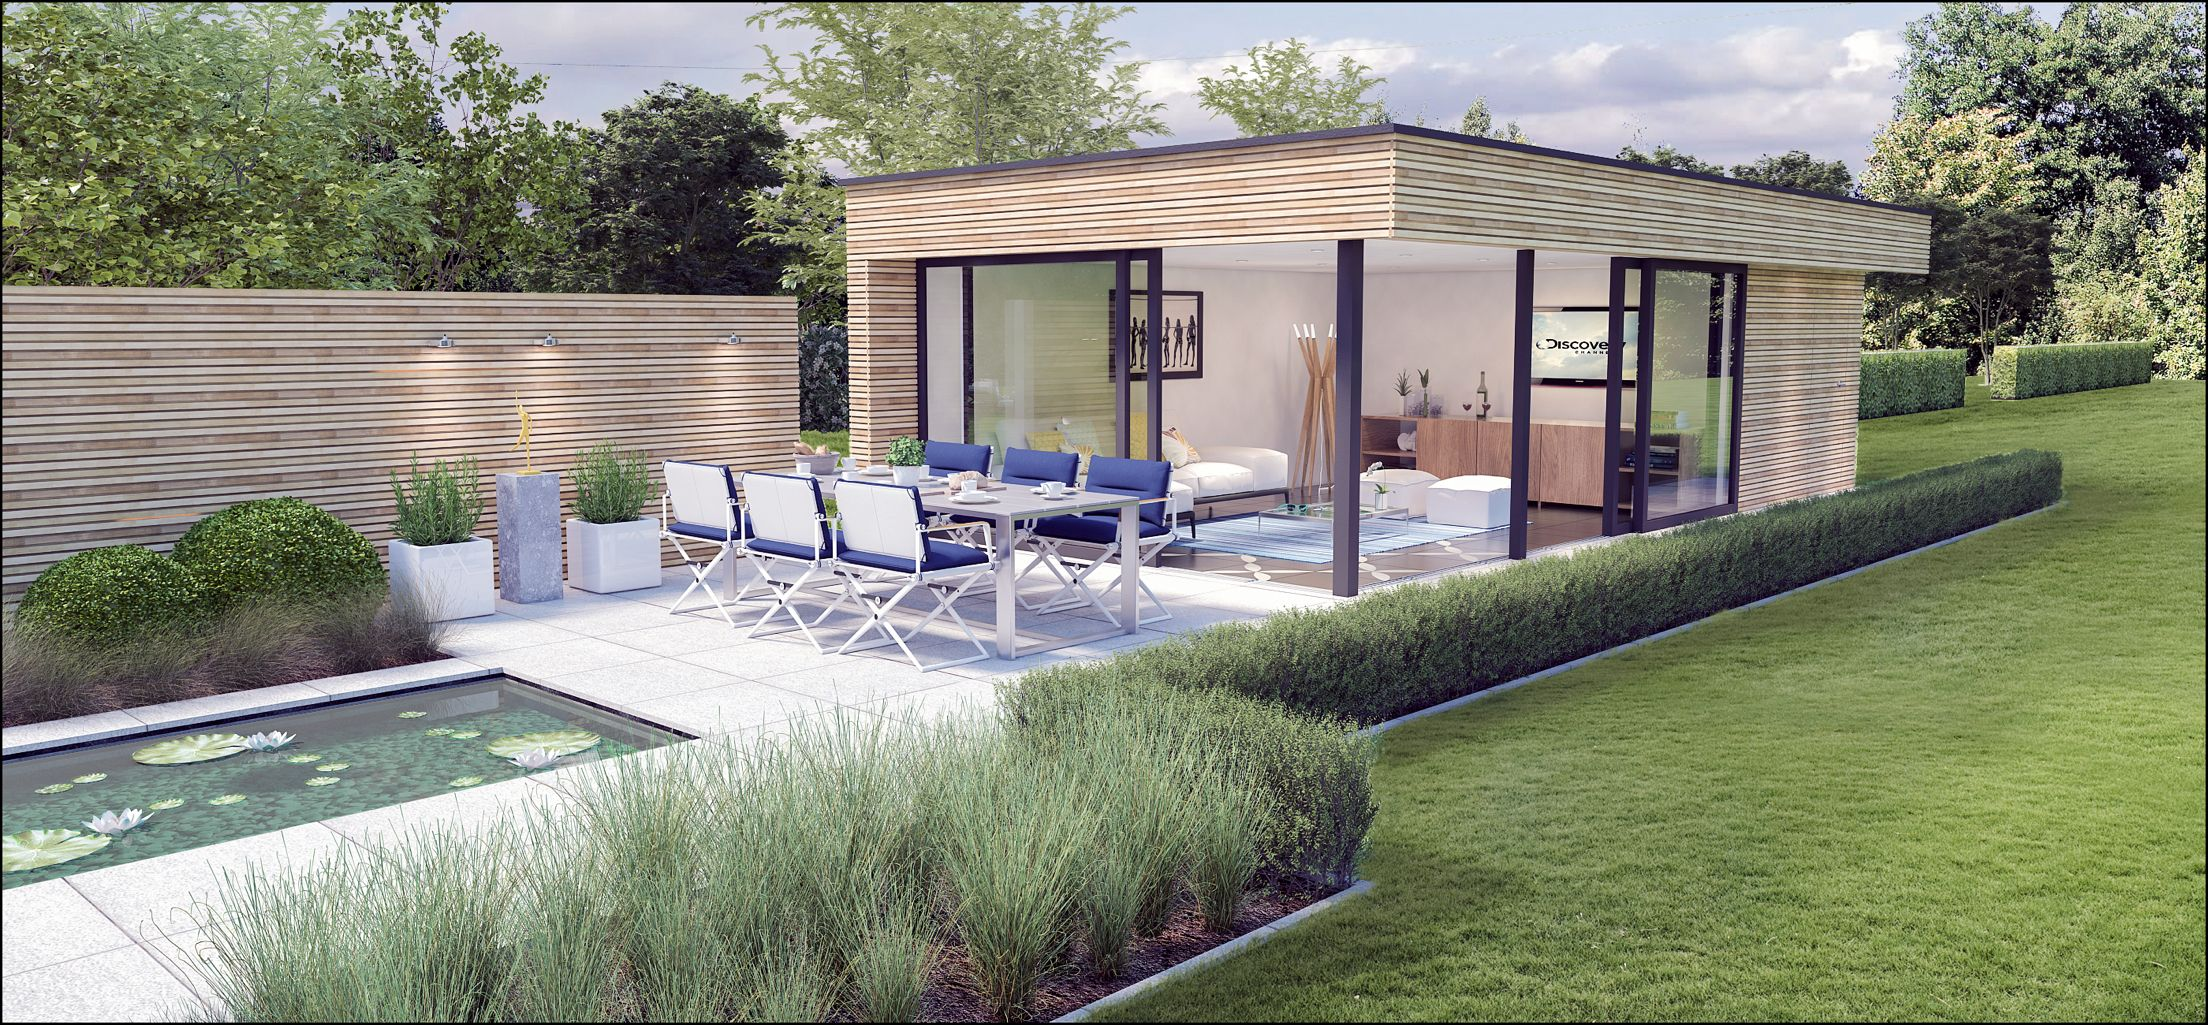 Tuinontwerp timothy cools tuinarchitectengroep eco poolhouse moderne tuin tuinontwerp for Tuin modern design